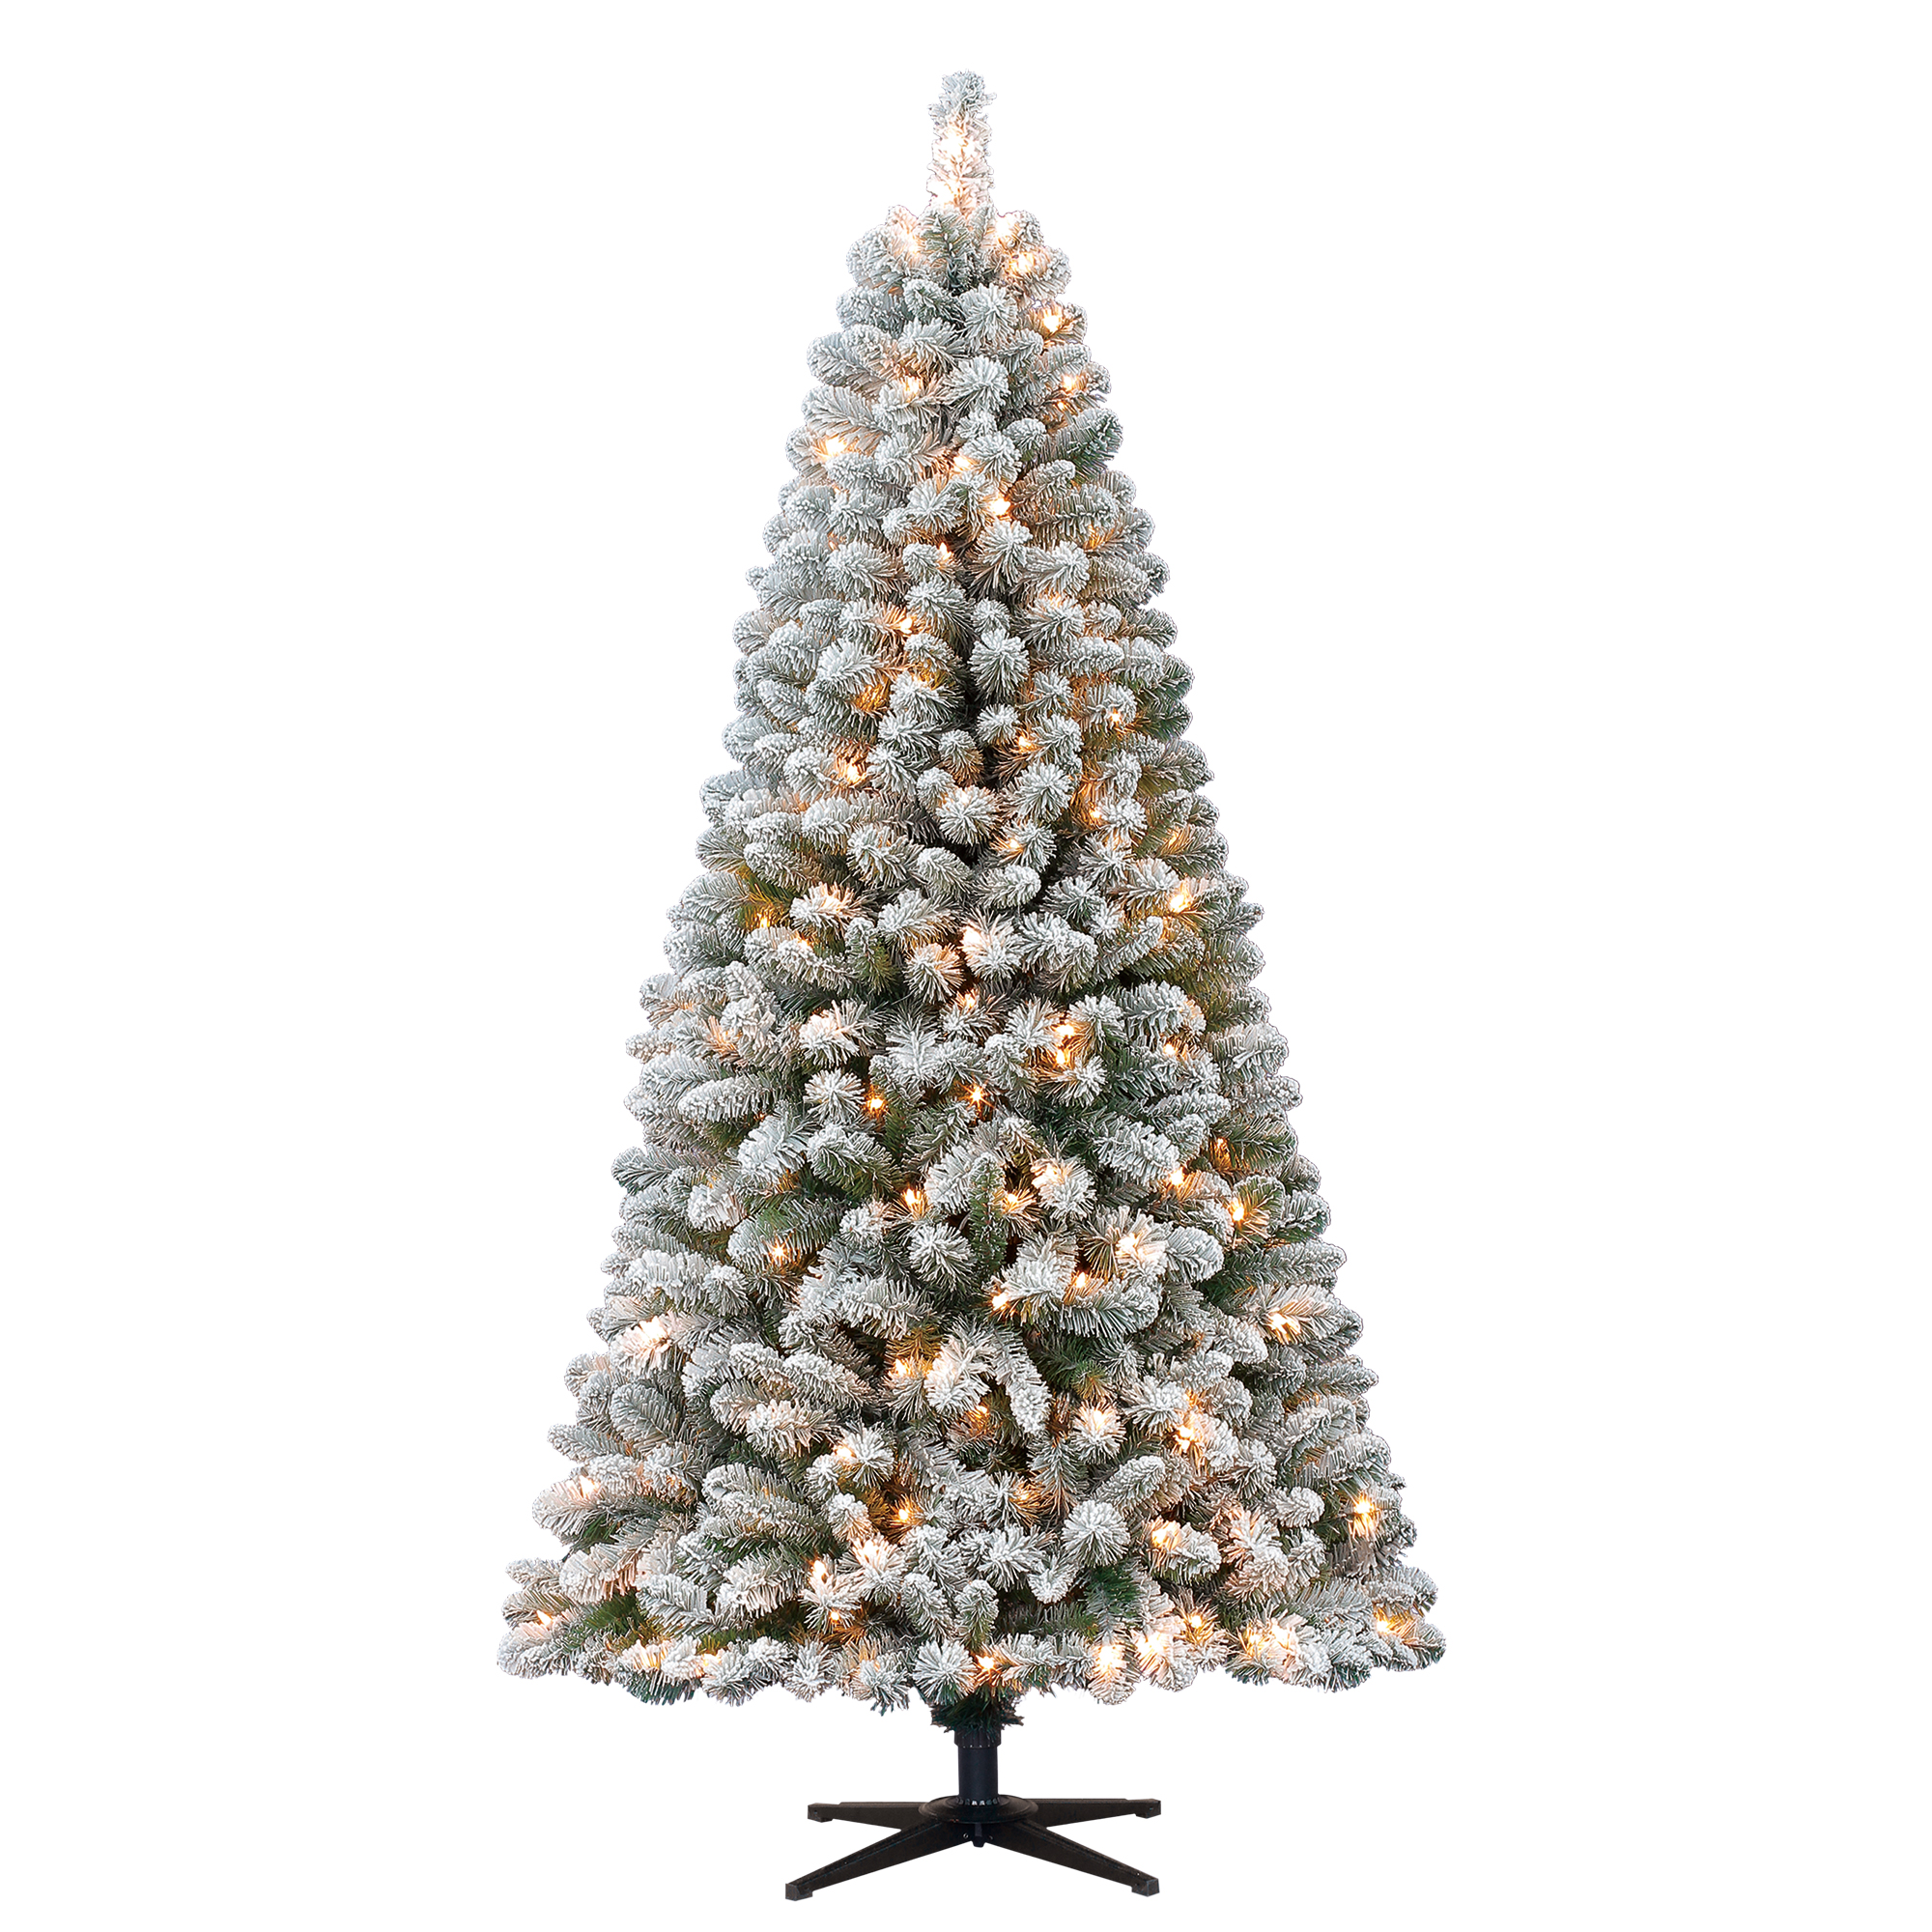 Holiday Time 6.5ft Flocked Pre-Lit Crystal Pine Artificial Christmas Tree with 250 Clear Lights - Green